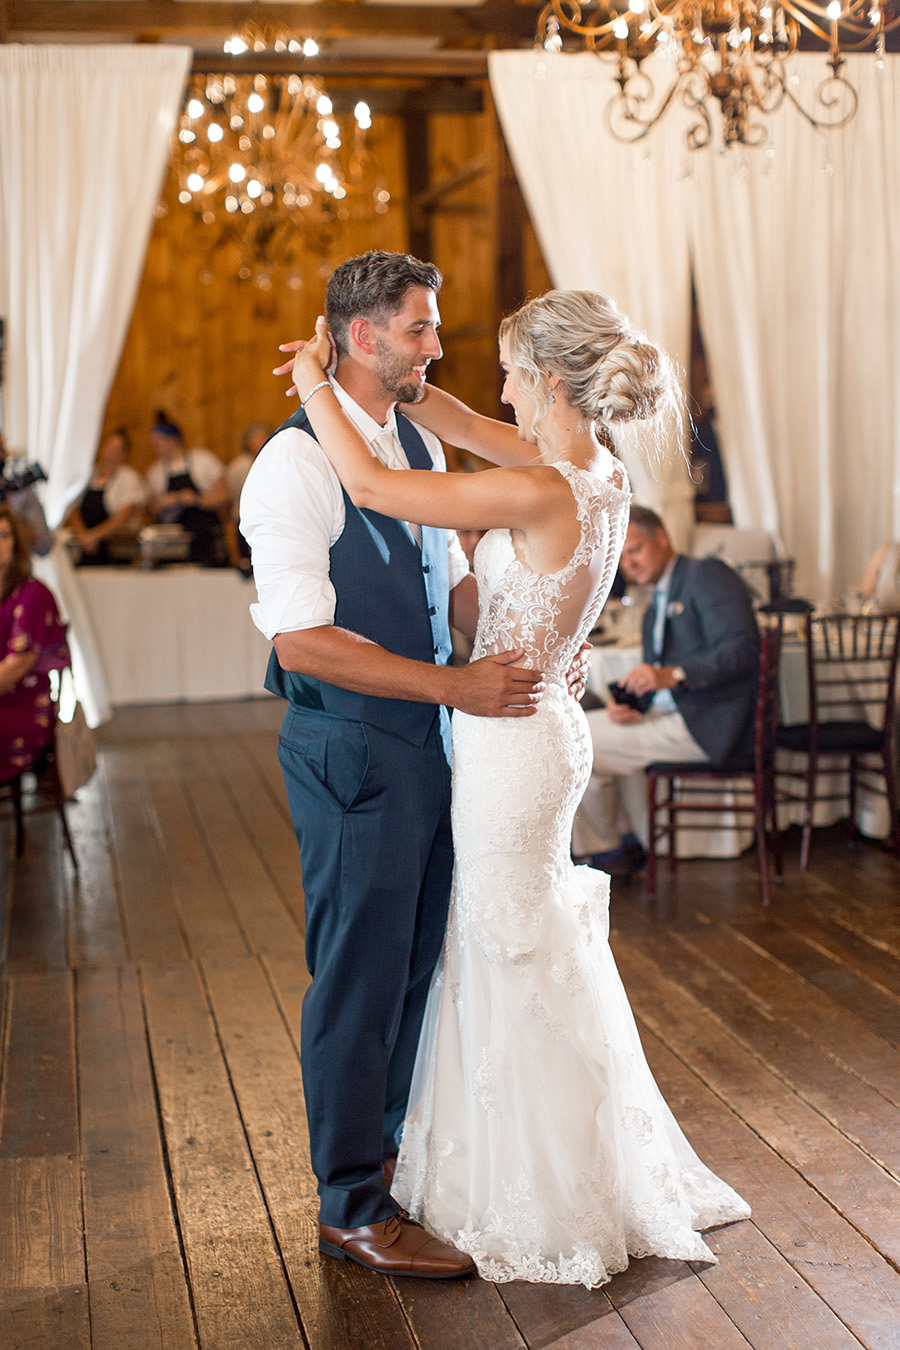 first dance as husband and wife in the barn at melhorn manor